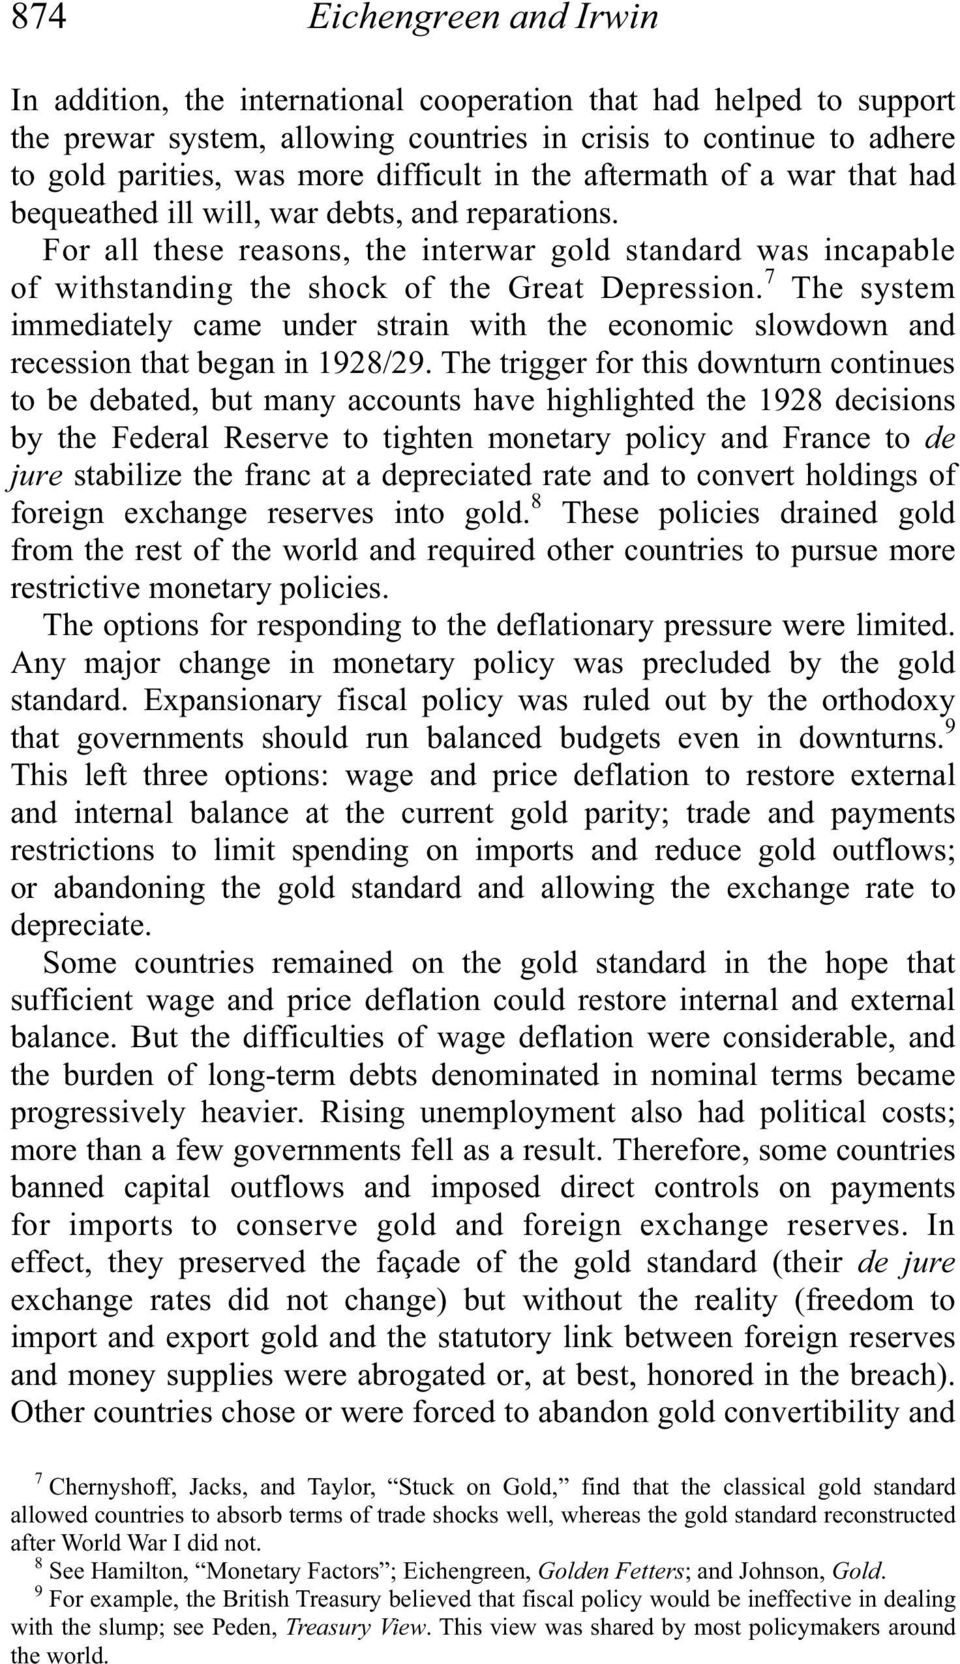 For all these reasons, the interwar gold standard was incapable of withstanding the shock of the Great Depression.